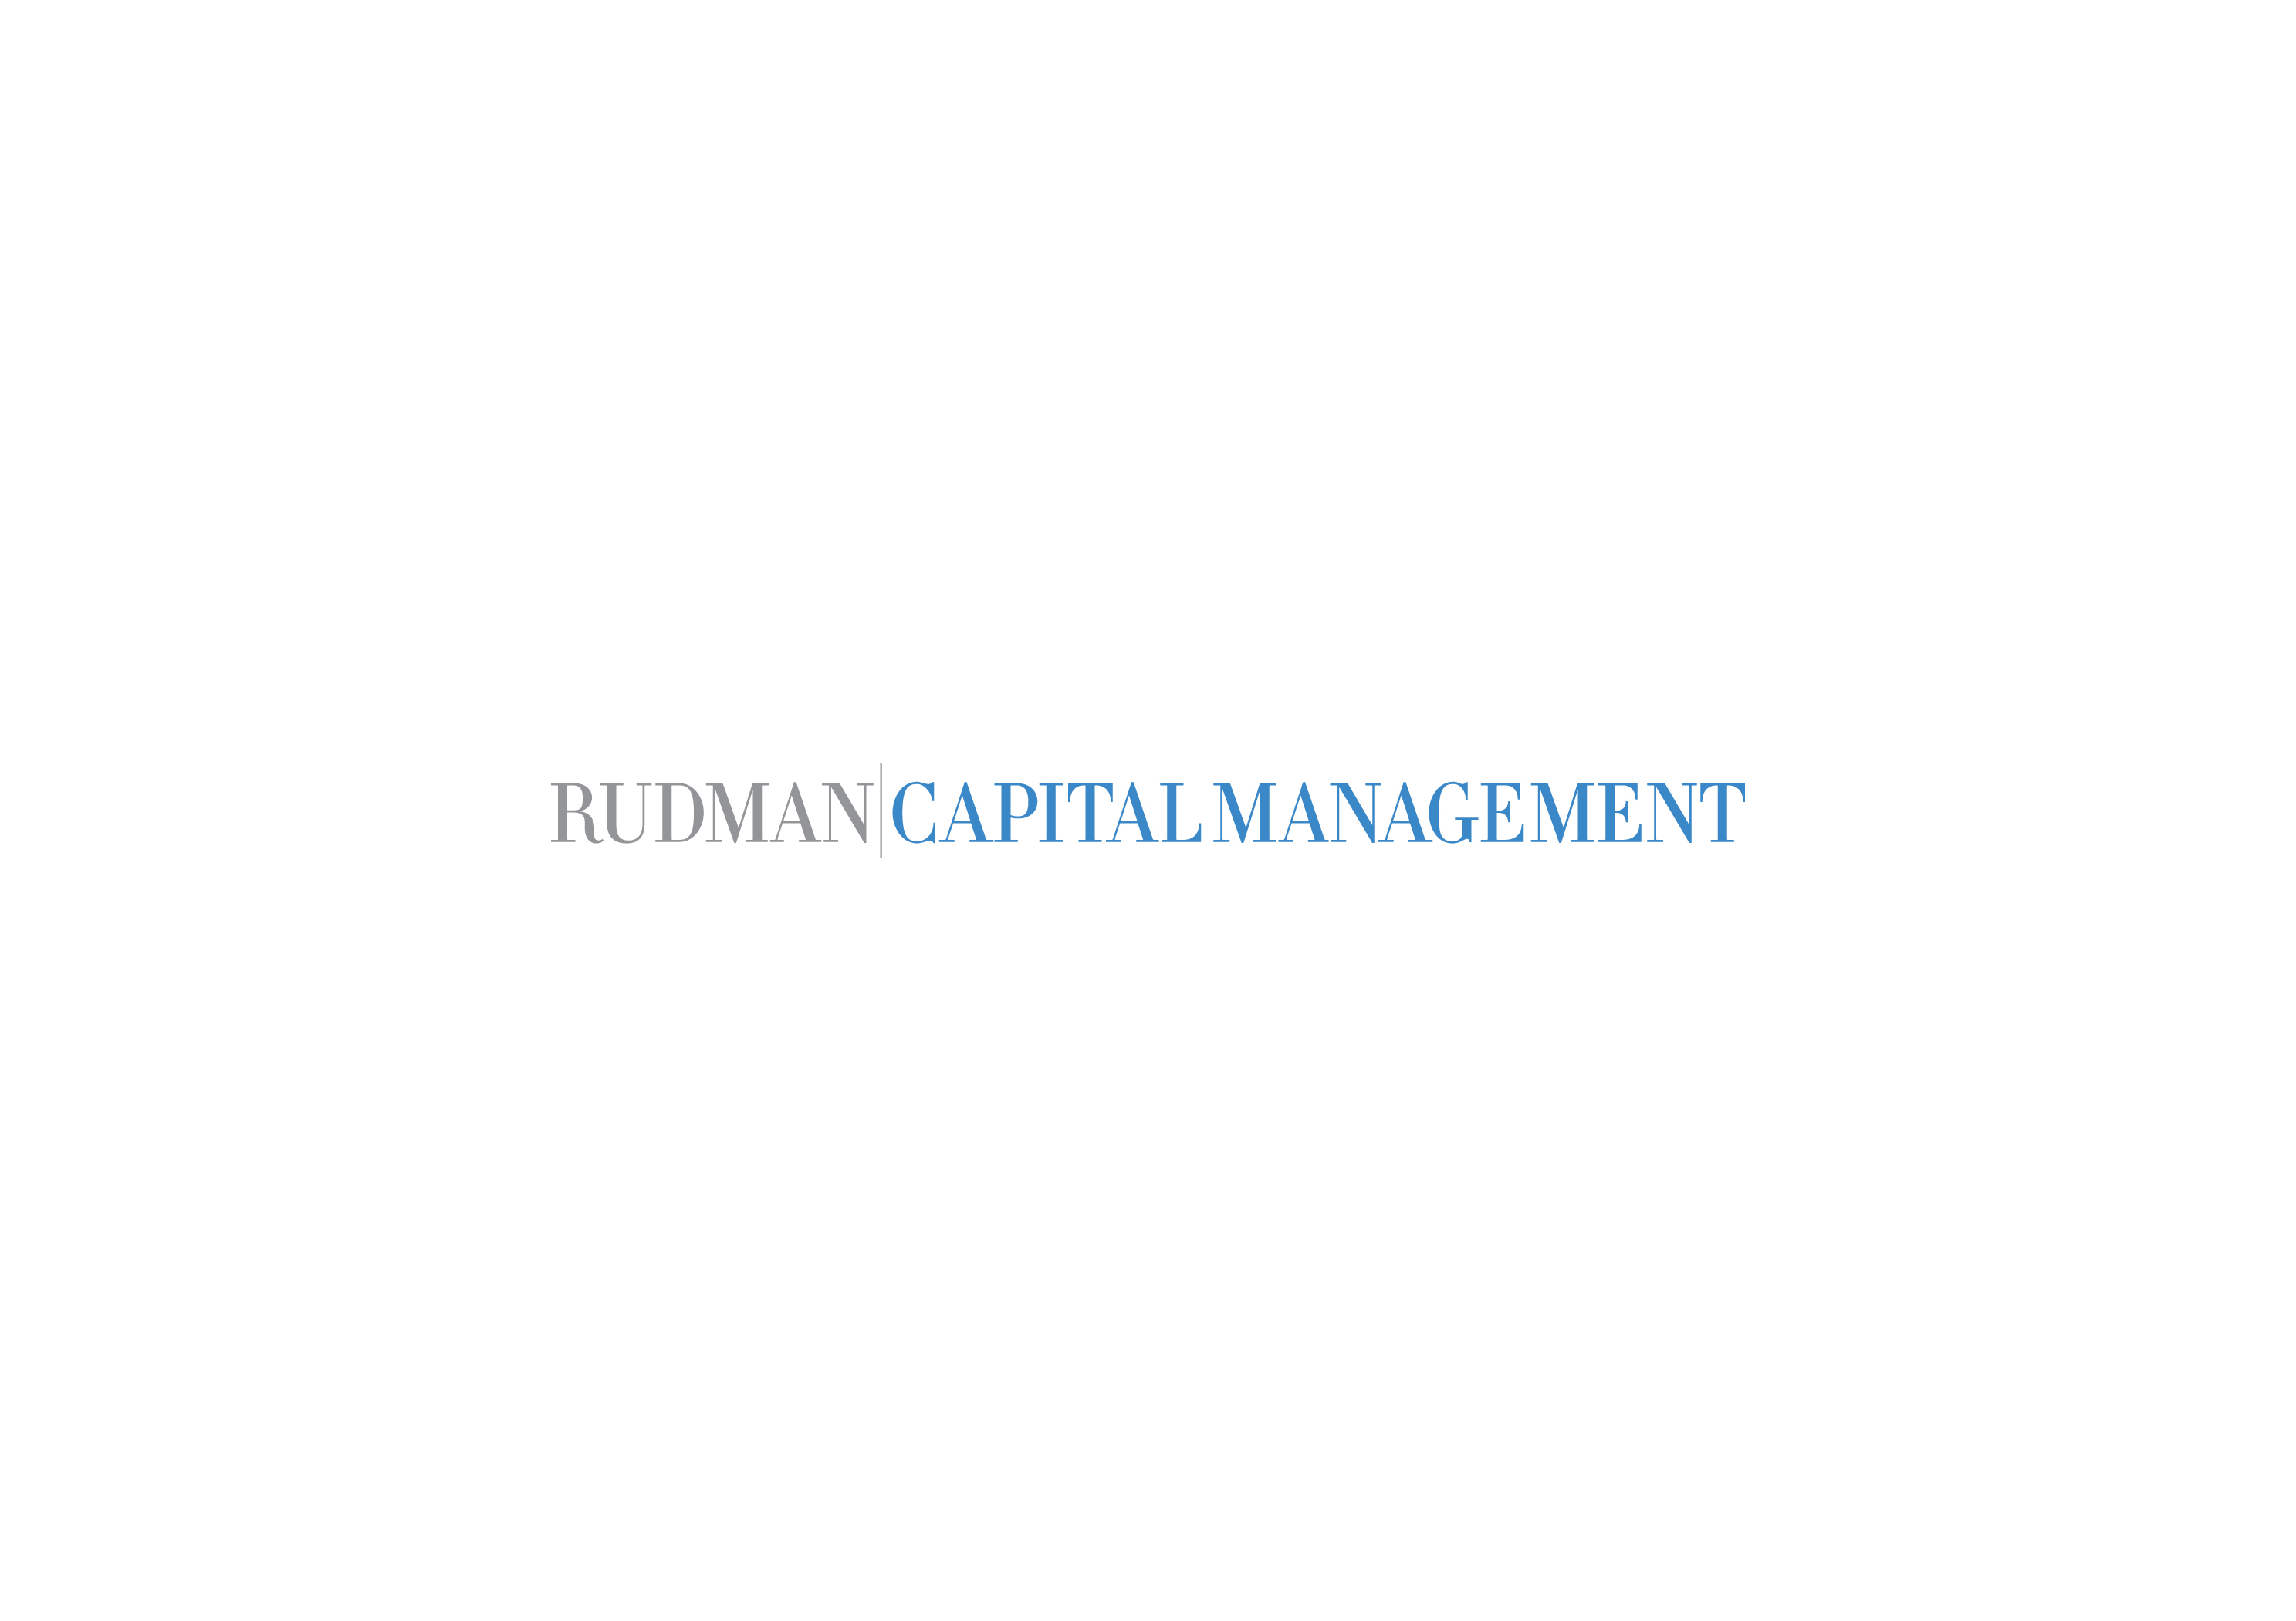 Rudman Capital Management Brand I.D.